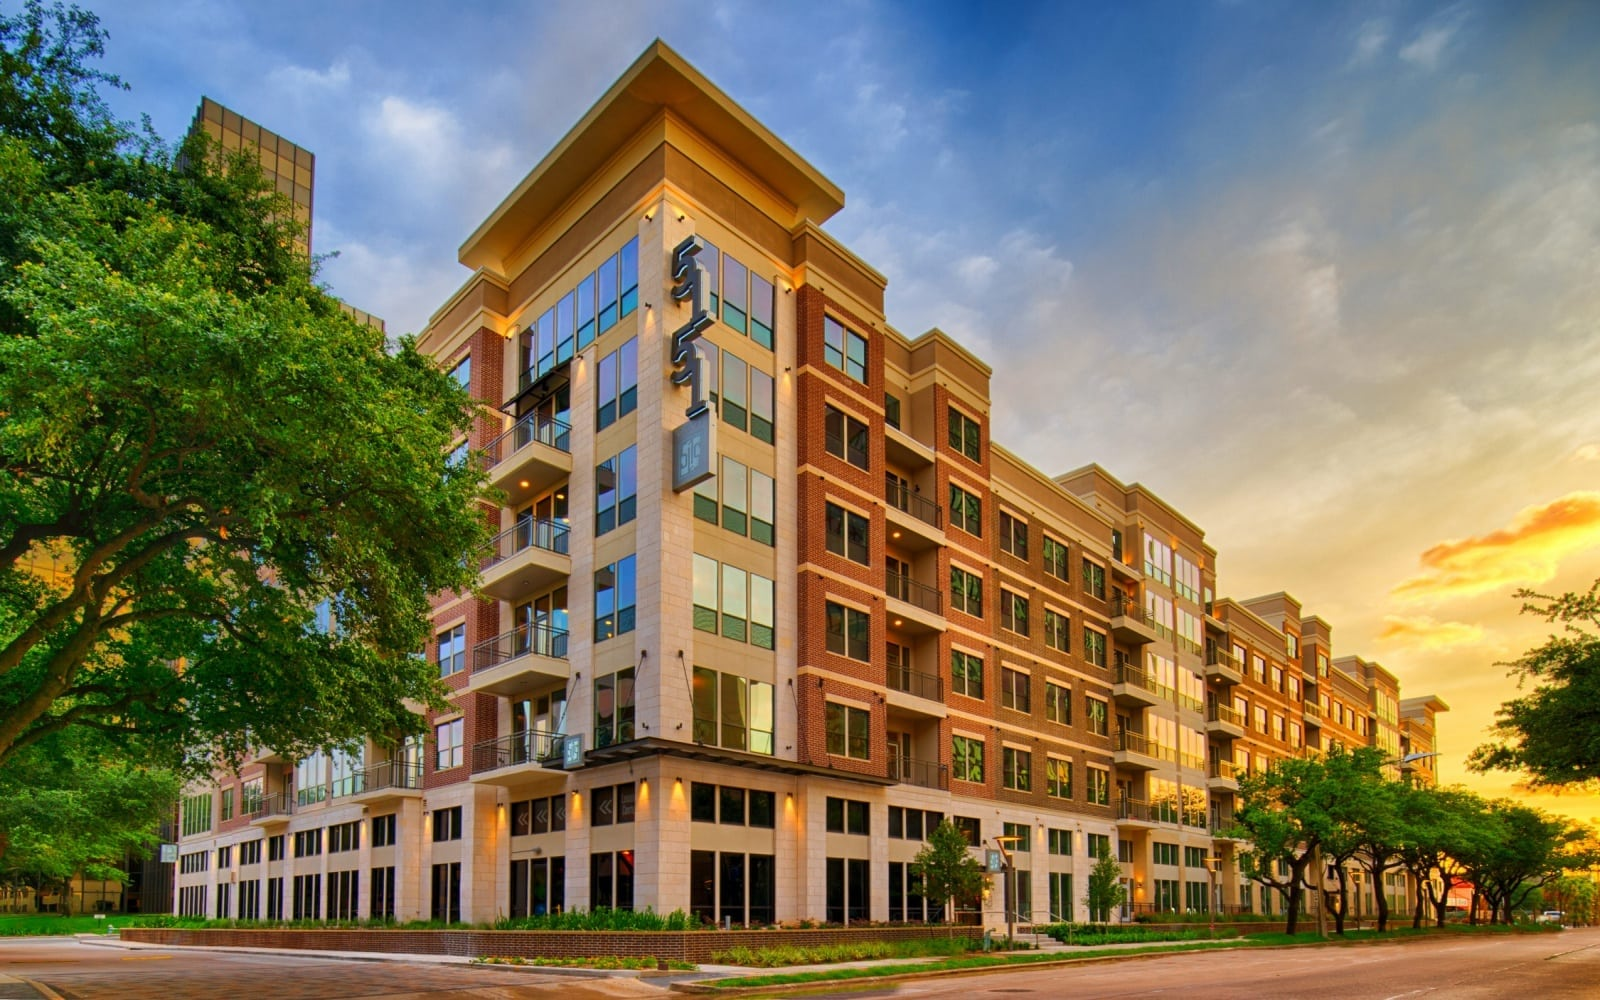 5151 Hidalgo Blvd,Houston,77056,Apartment,Hidalgo Blvd,2878